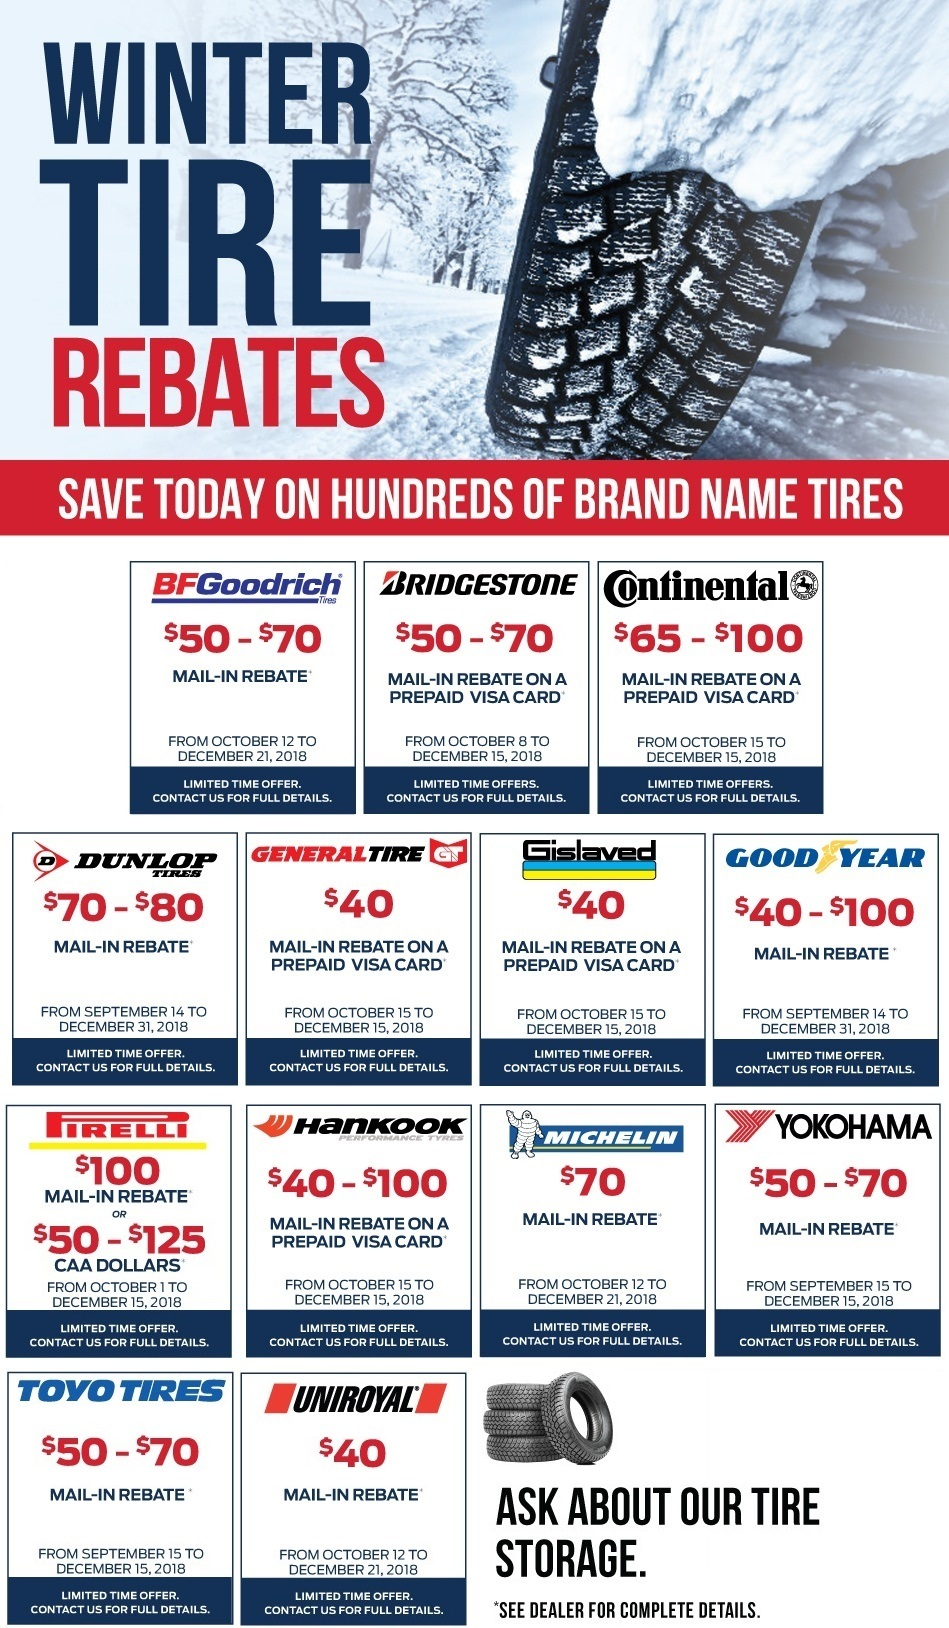 Current Winter Tire Rebates to the right. Speak to our either our Parts or Service Advisors for more information about Tire Rebates. Rebates up to $100 on popular brands such as BF Goodrich, Bridgestone, Continental, Dunlop Tires, General Tires, Gislaved, GoodYear, Pirelli, Hankook, Michelin, Yokohama, Toyo Tires and Uniroyal.